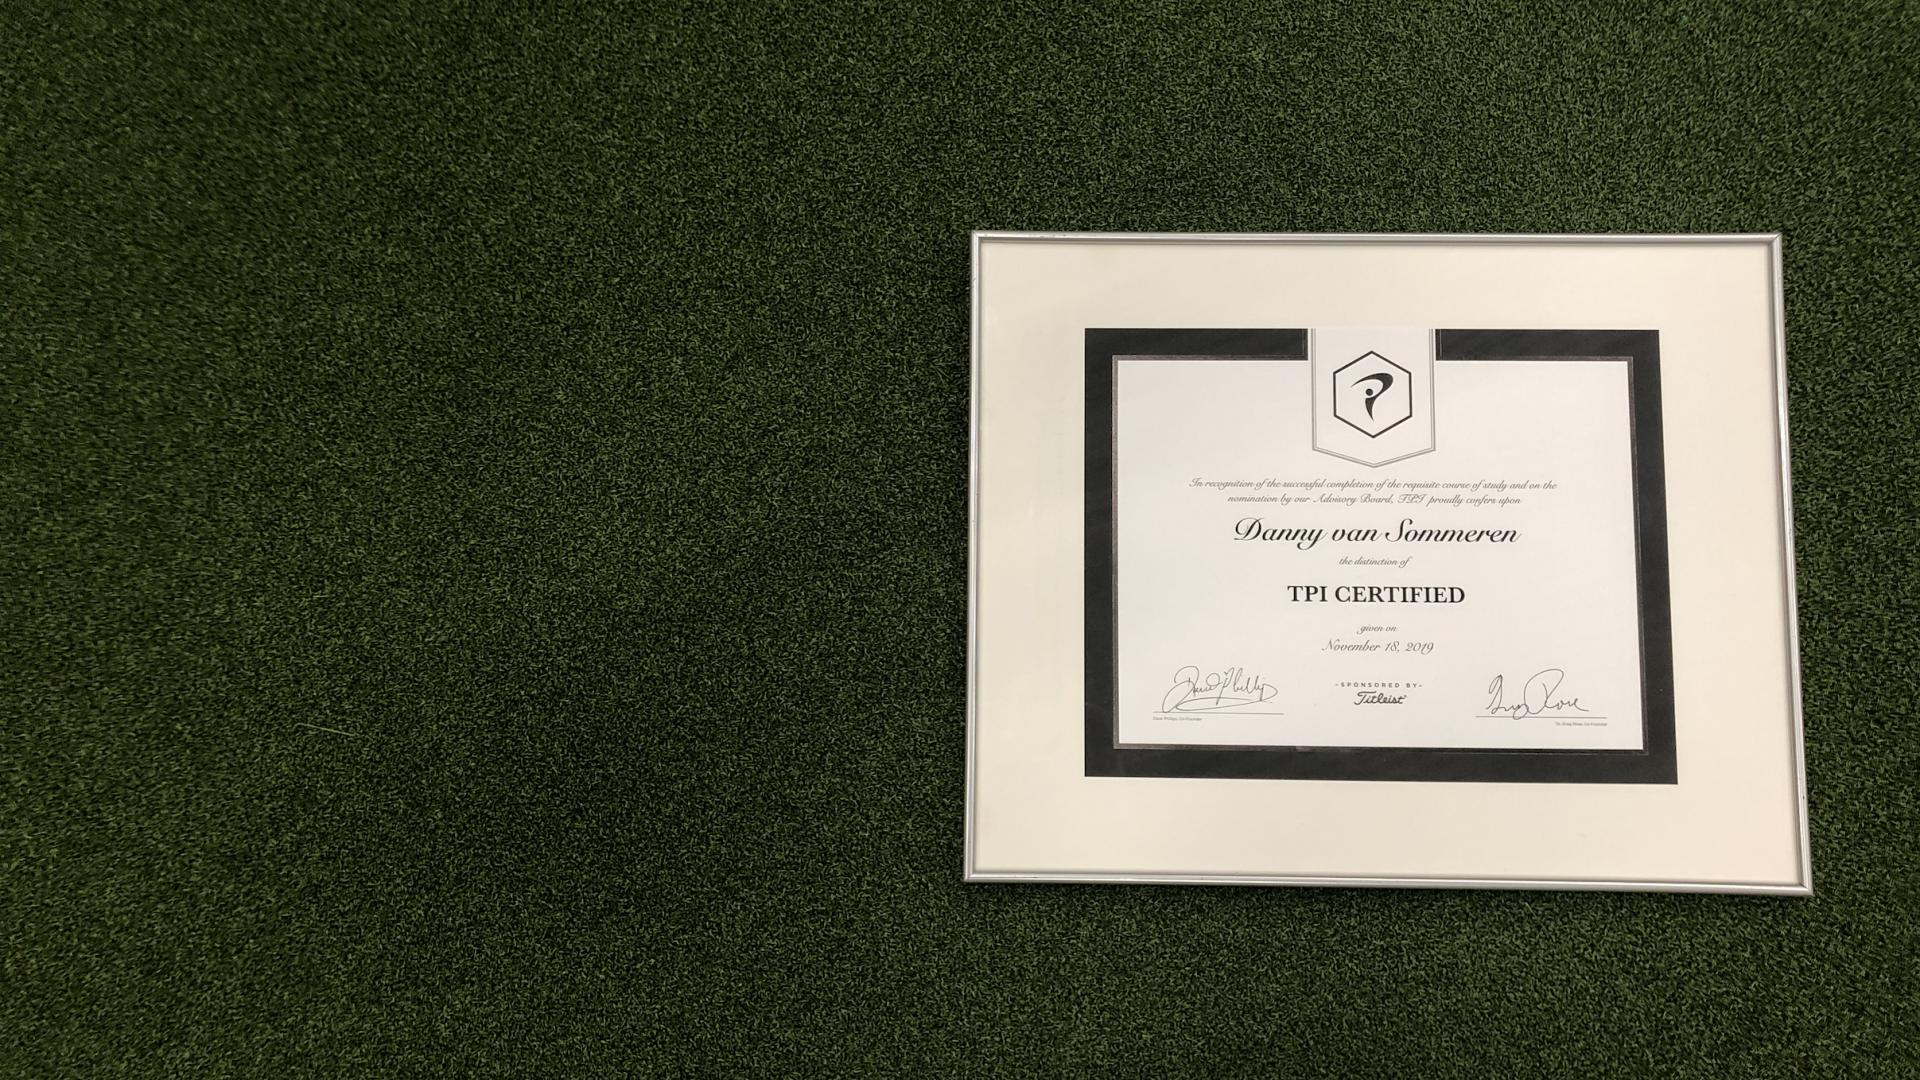 (TPI) Titleist performance institute certified